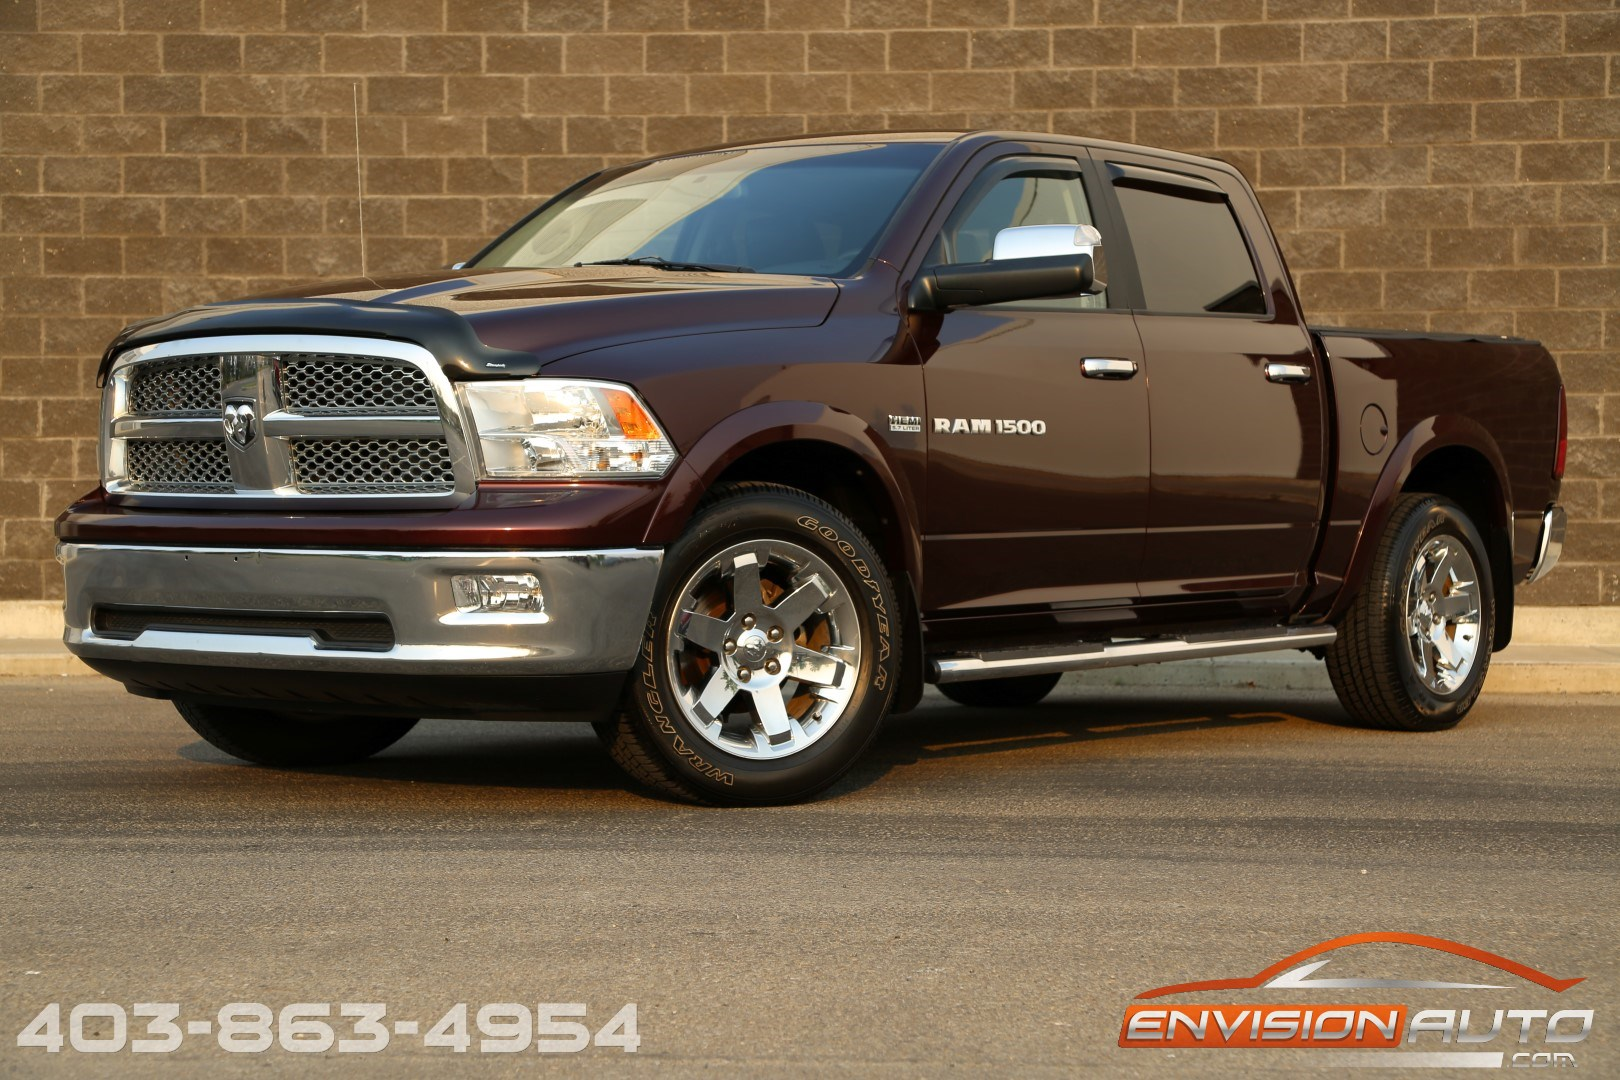 B F Cd D additionally F together with Maxresdefault as well Hqdefault moreover F. on 2013 dodge ram 1500